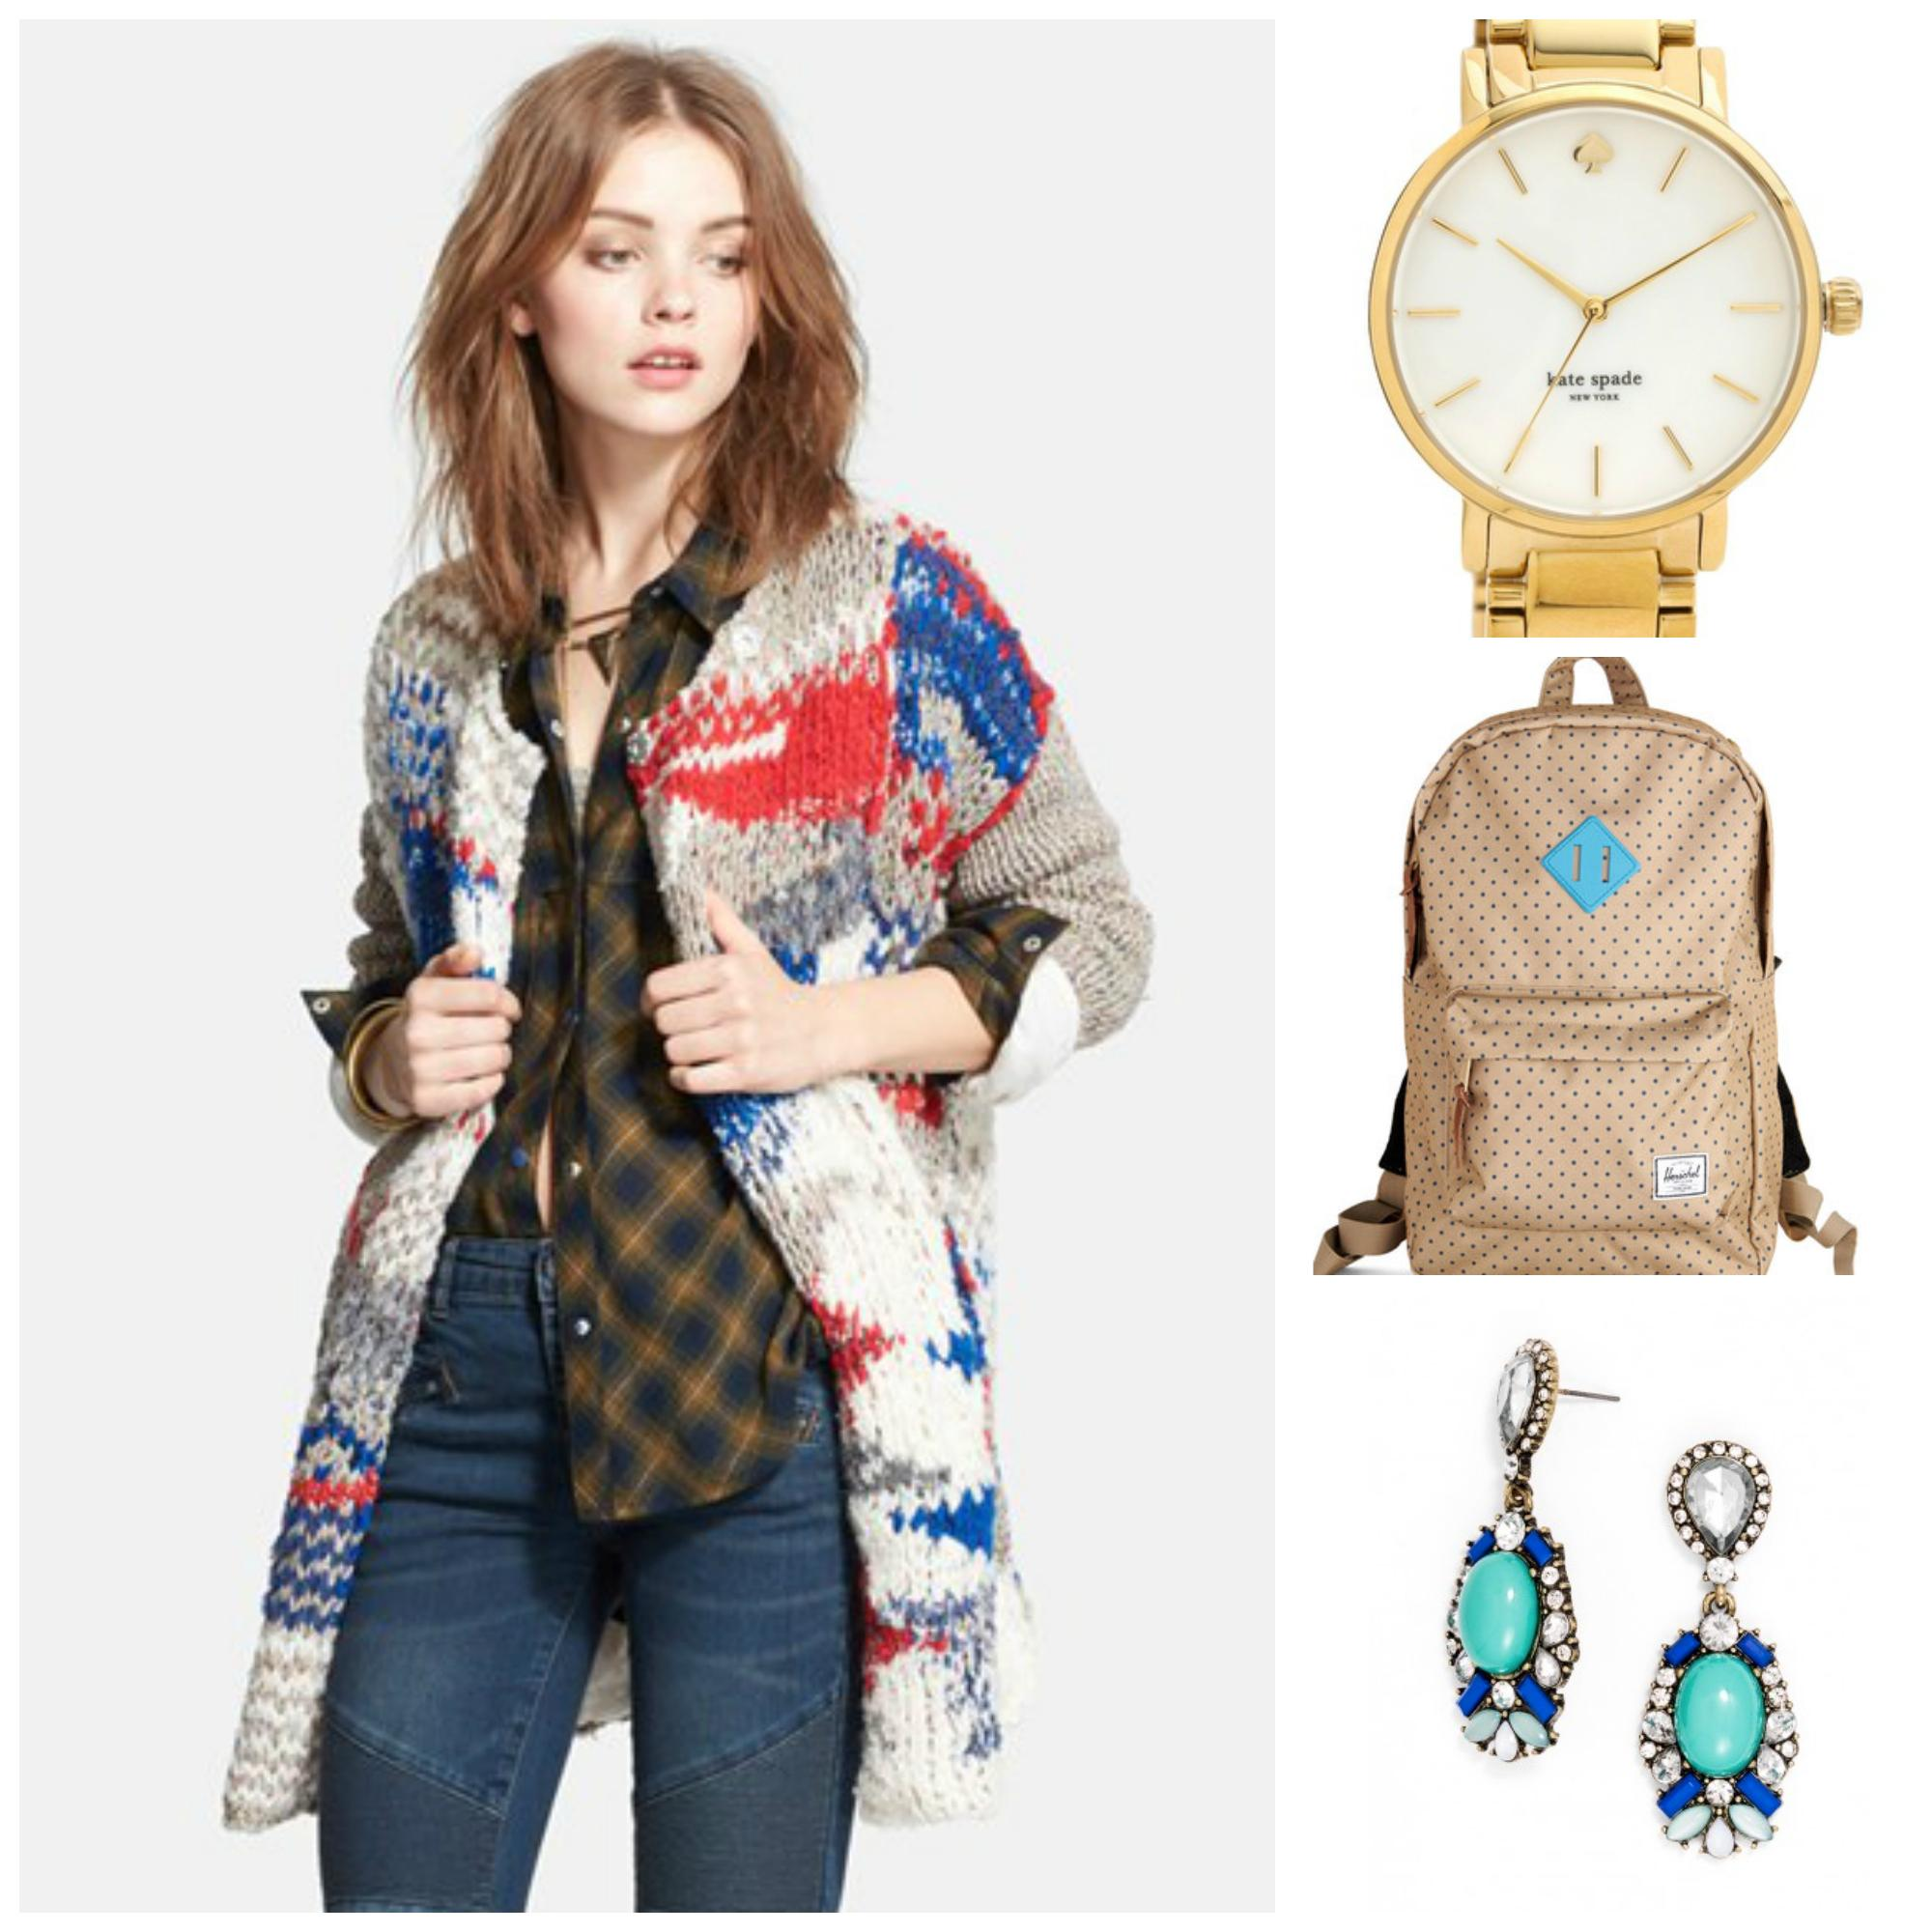 The cutest clothes and accessories for back to school: http://t.co/3o4WoSfpEK http://t.co/bZjQ23cq2I